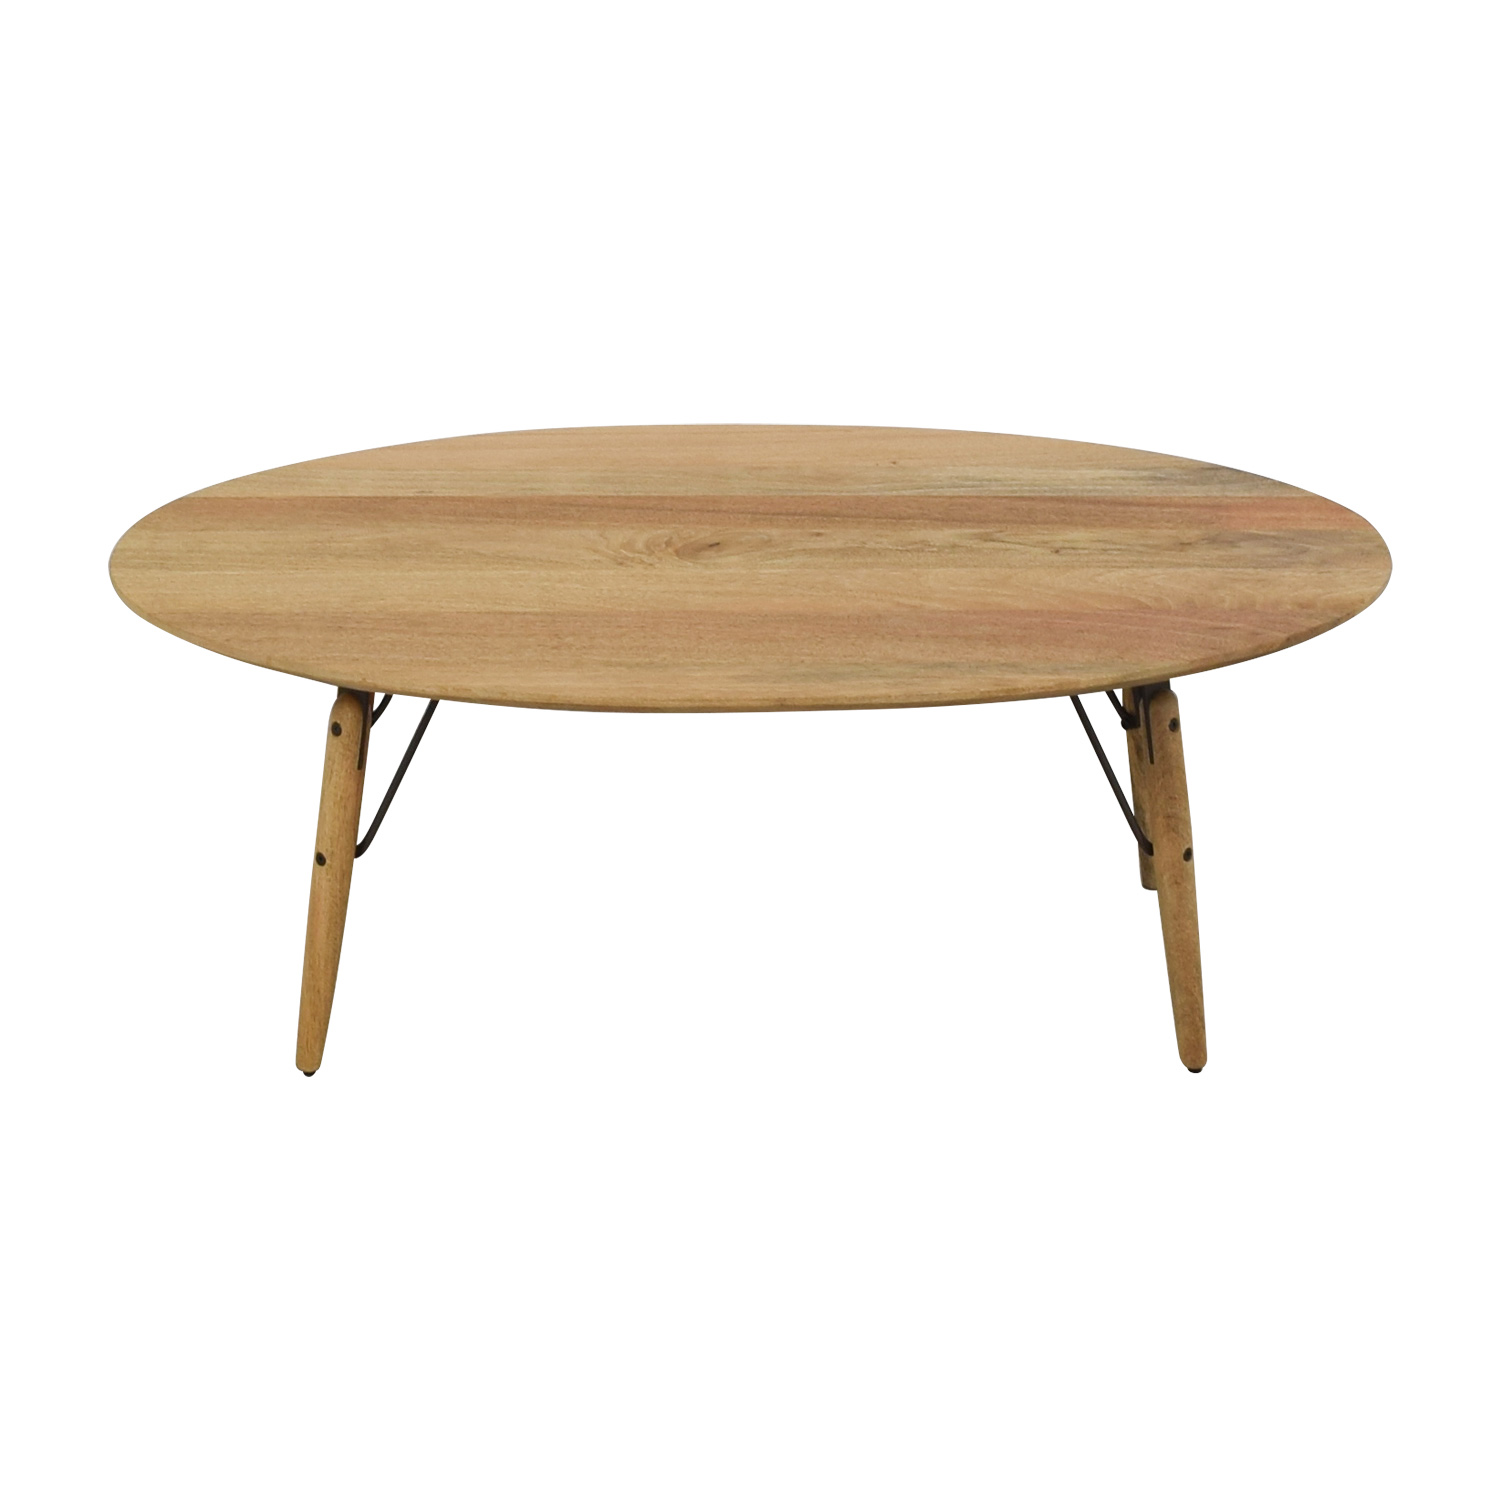 West Elm West Elm Graphica Oval Coffee Table Raw Mango nj